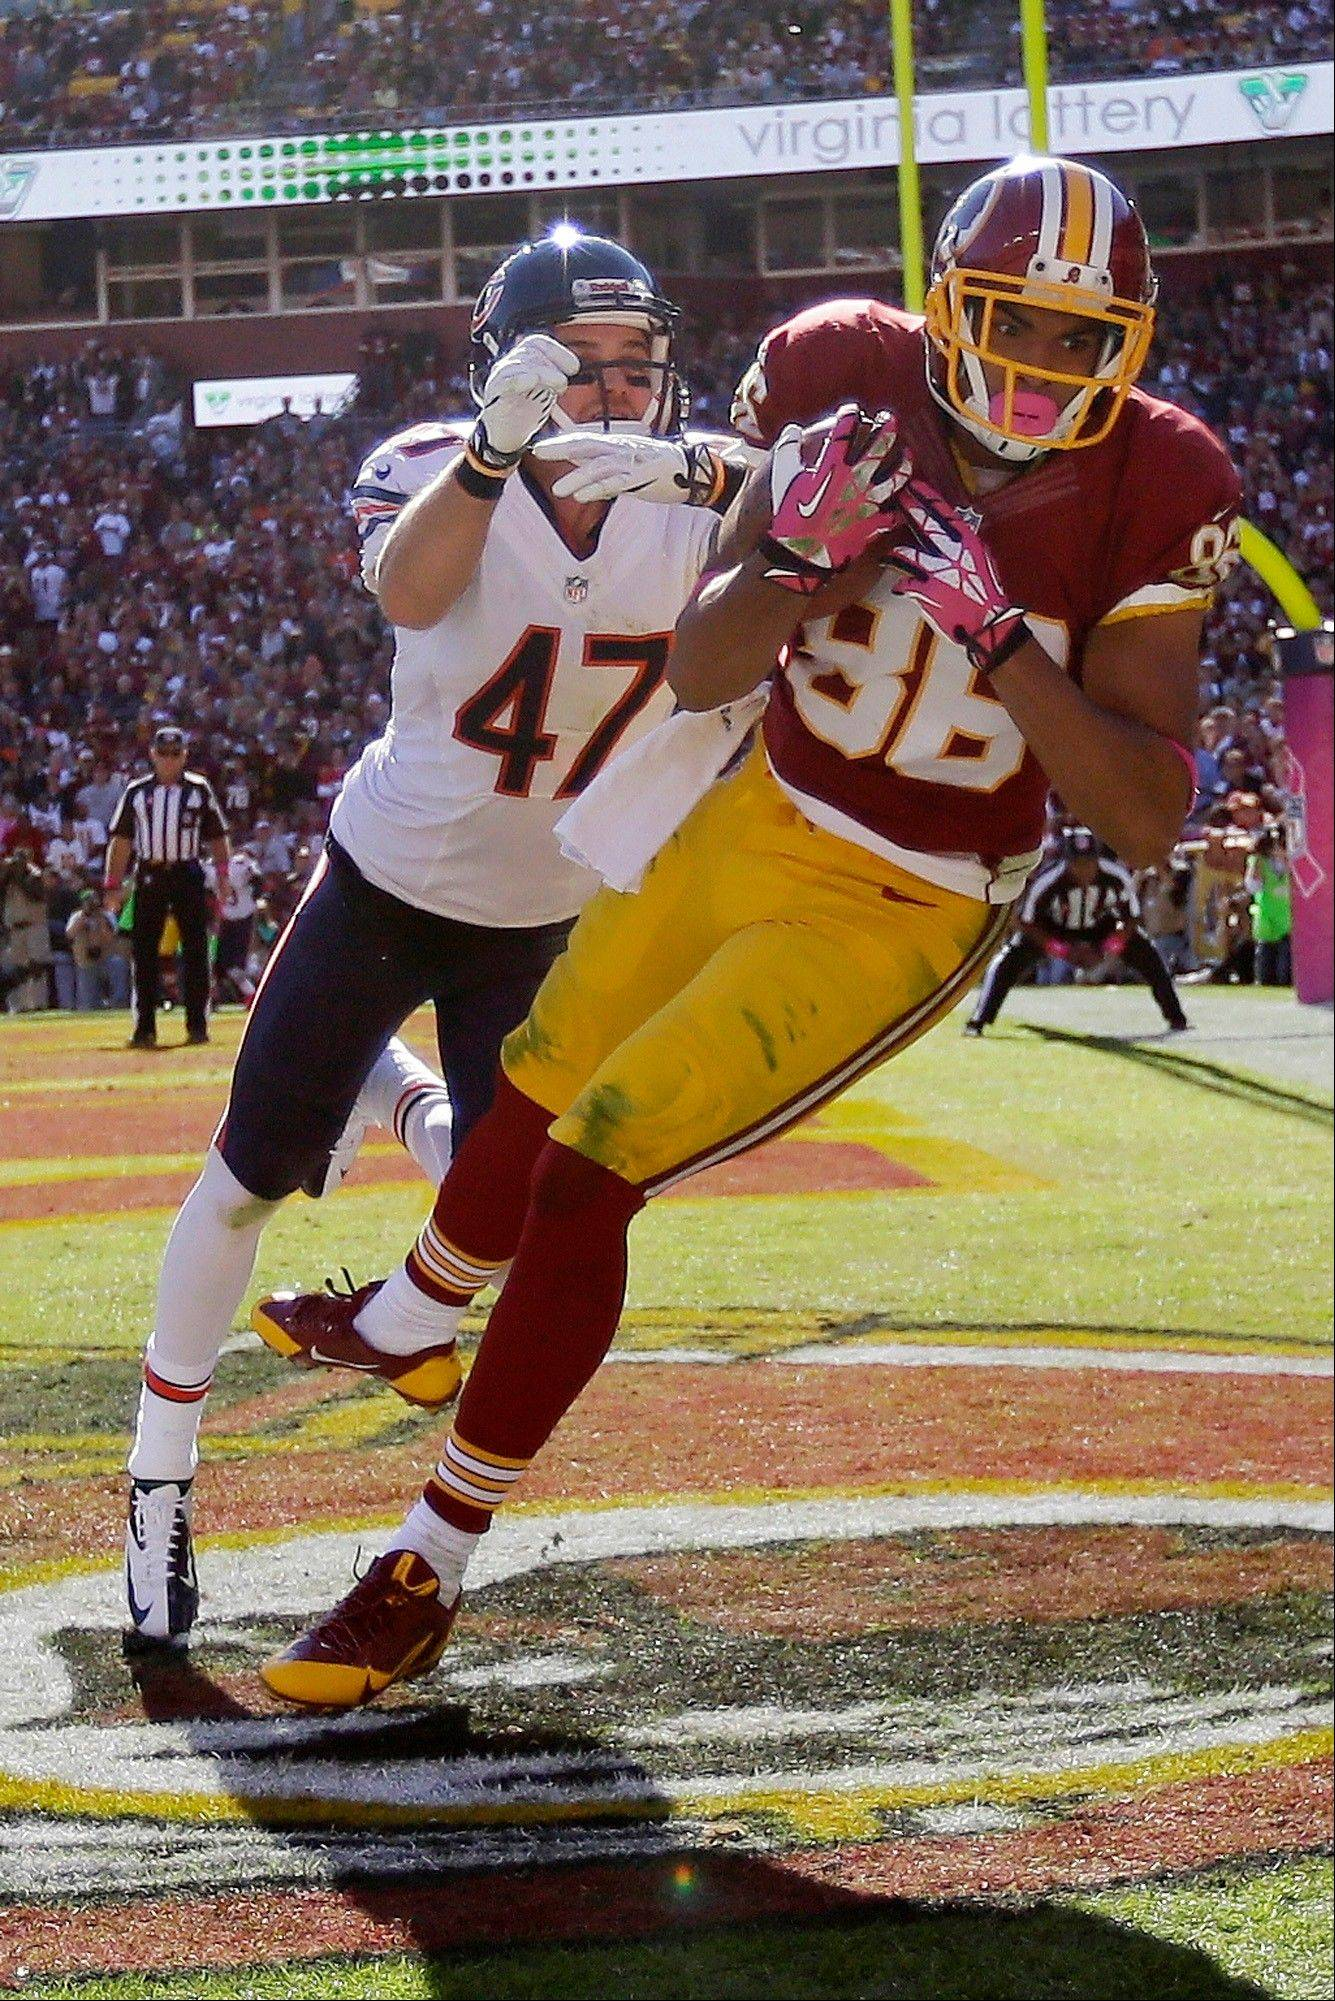 Washington tight end Jordan Reed pulls in a touchdown pass under pressure from Bears free safety Chris Conte during the first half of a game in Landover, Md., Sunday.